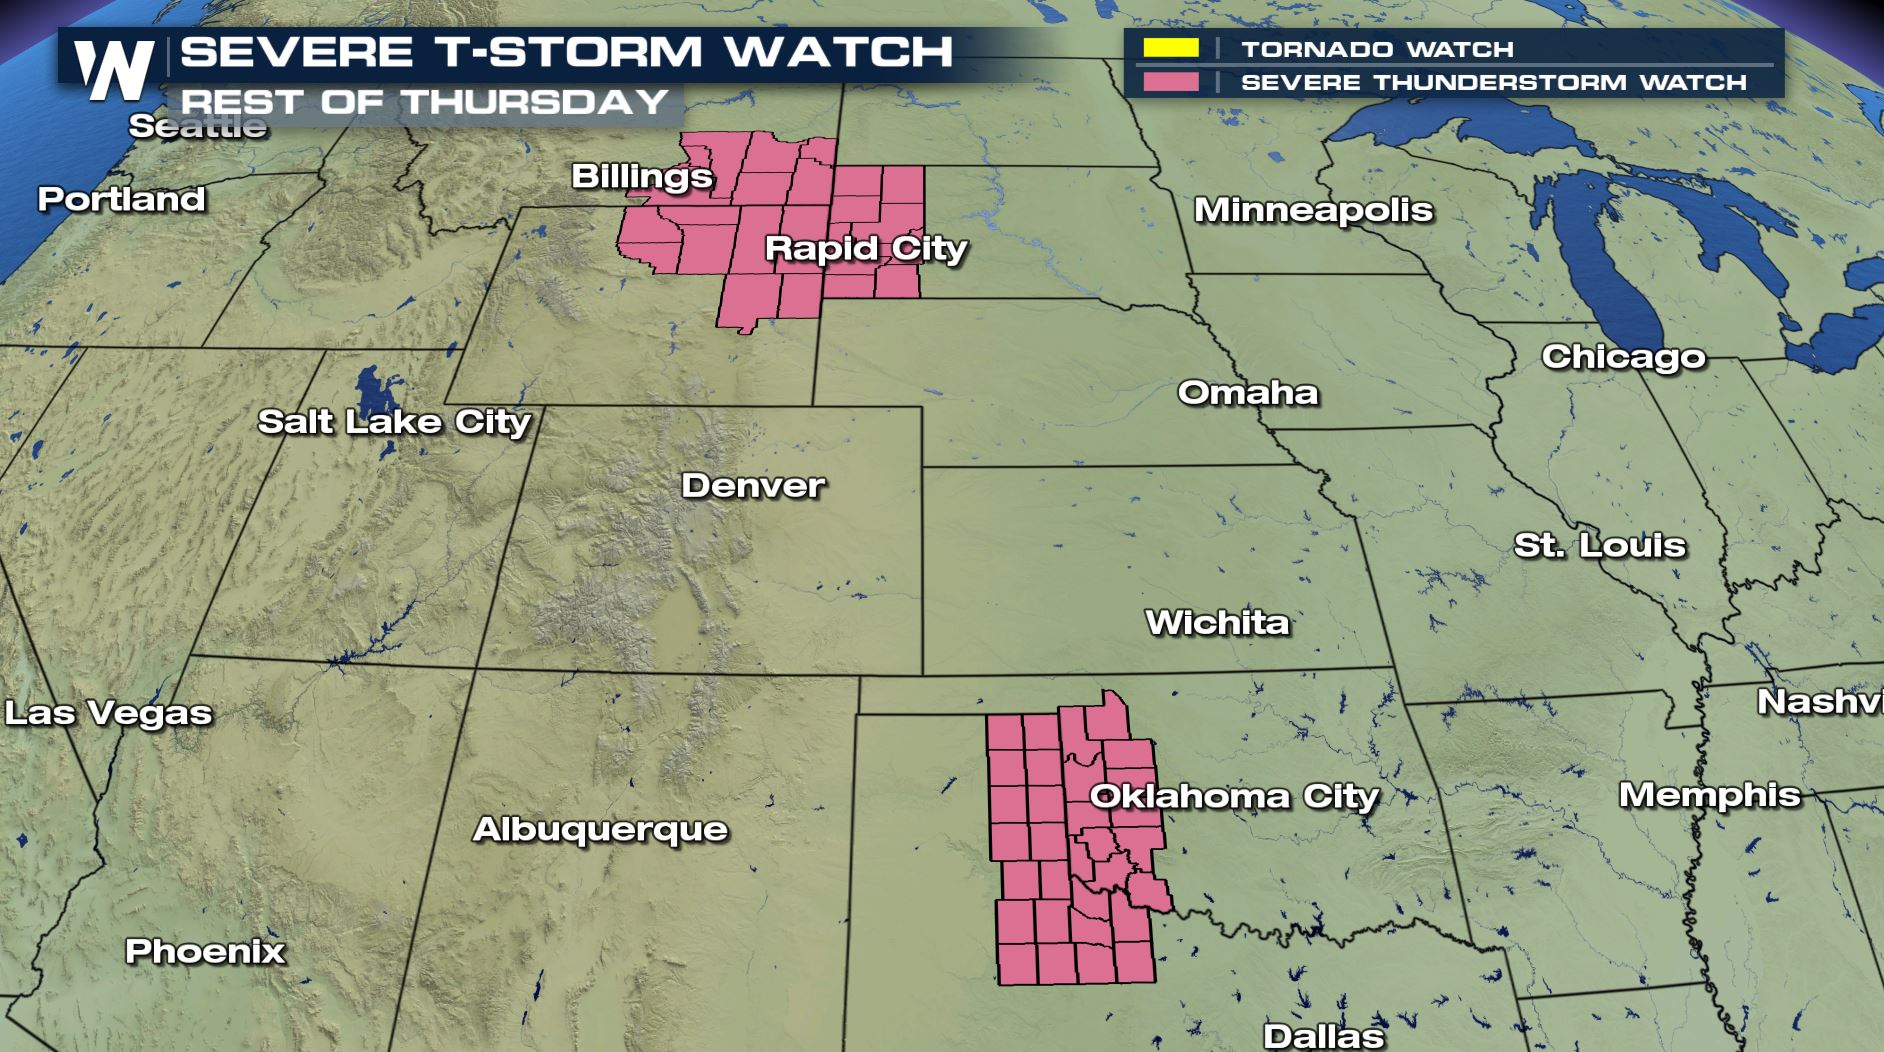 Severe Update: Watch Boxes Issued for Several States